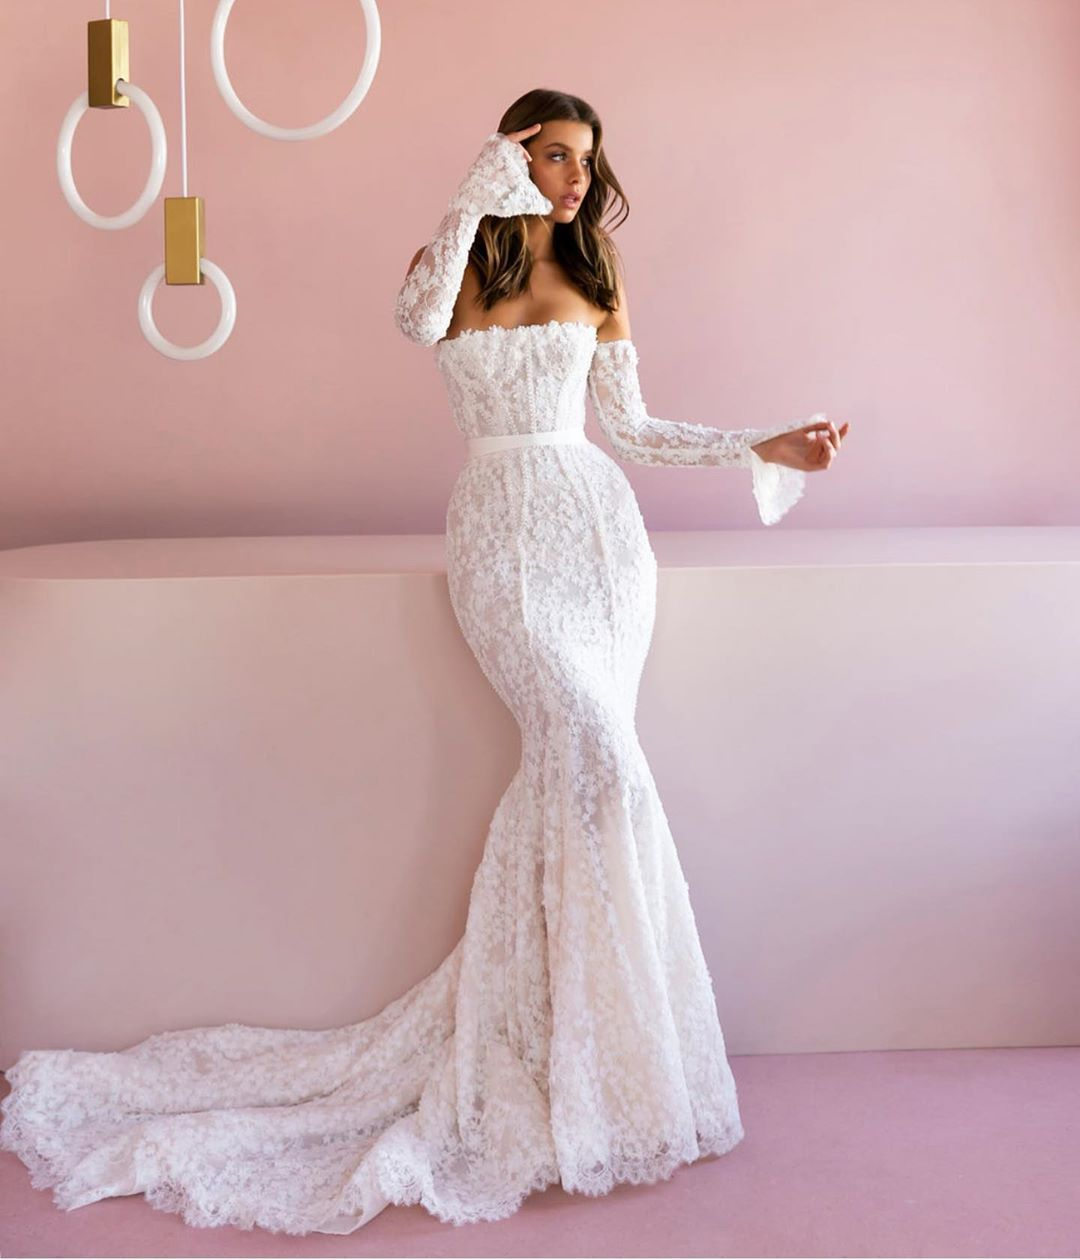 Perette Gown From Our Meet Me At Versailles 2020 Collection